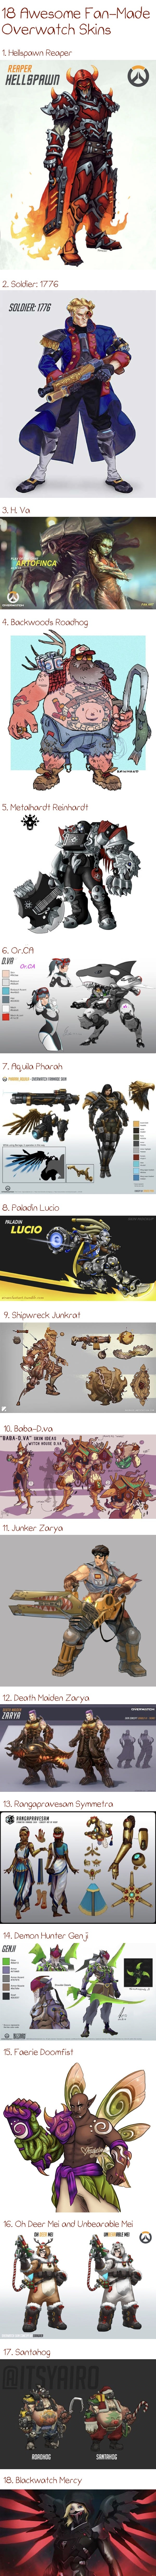 Awesome fan-made Overwatch skins